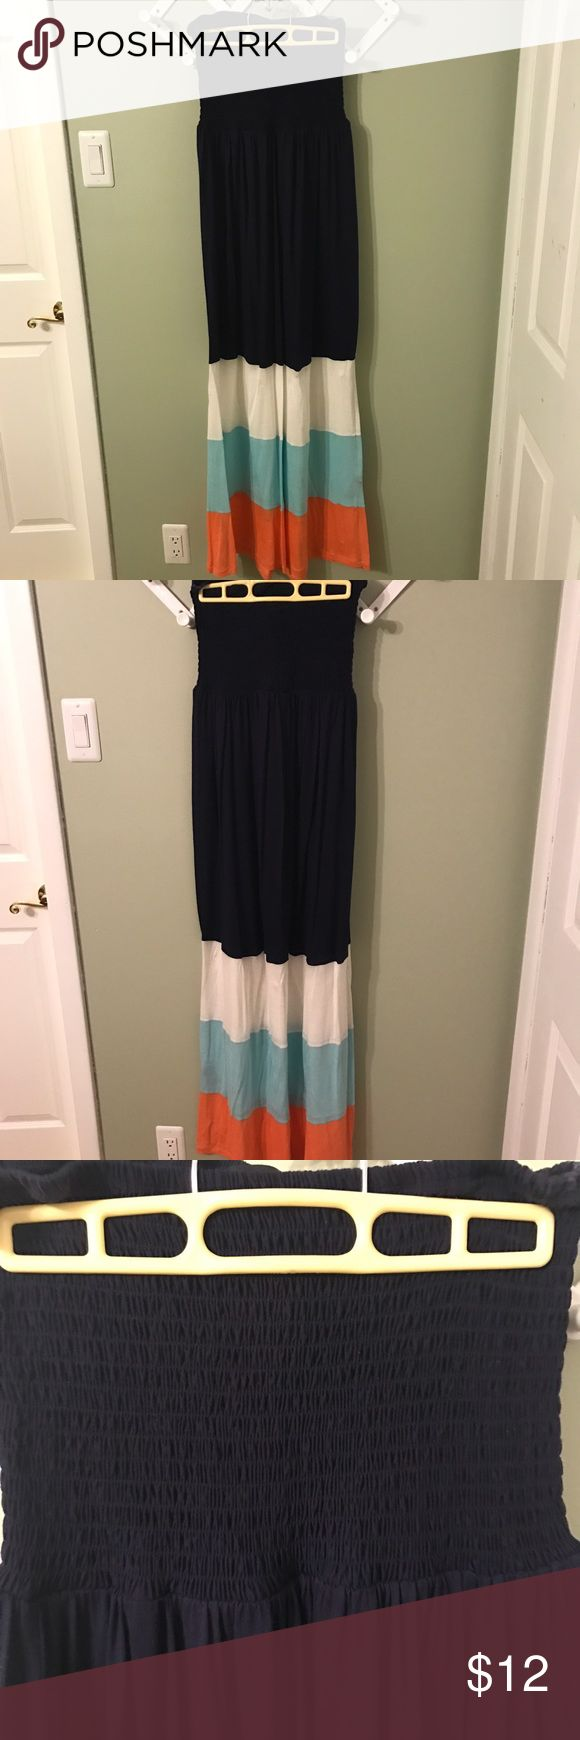 1X Strapless Maxi Dress 1X Strapless Maxi Dress from Forever 21. Excellent used condition. Great for summer coming up! Forever 21 Dresses Maxi